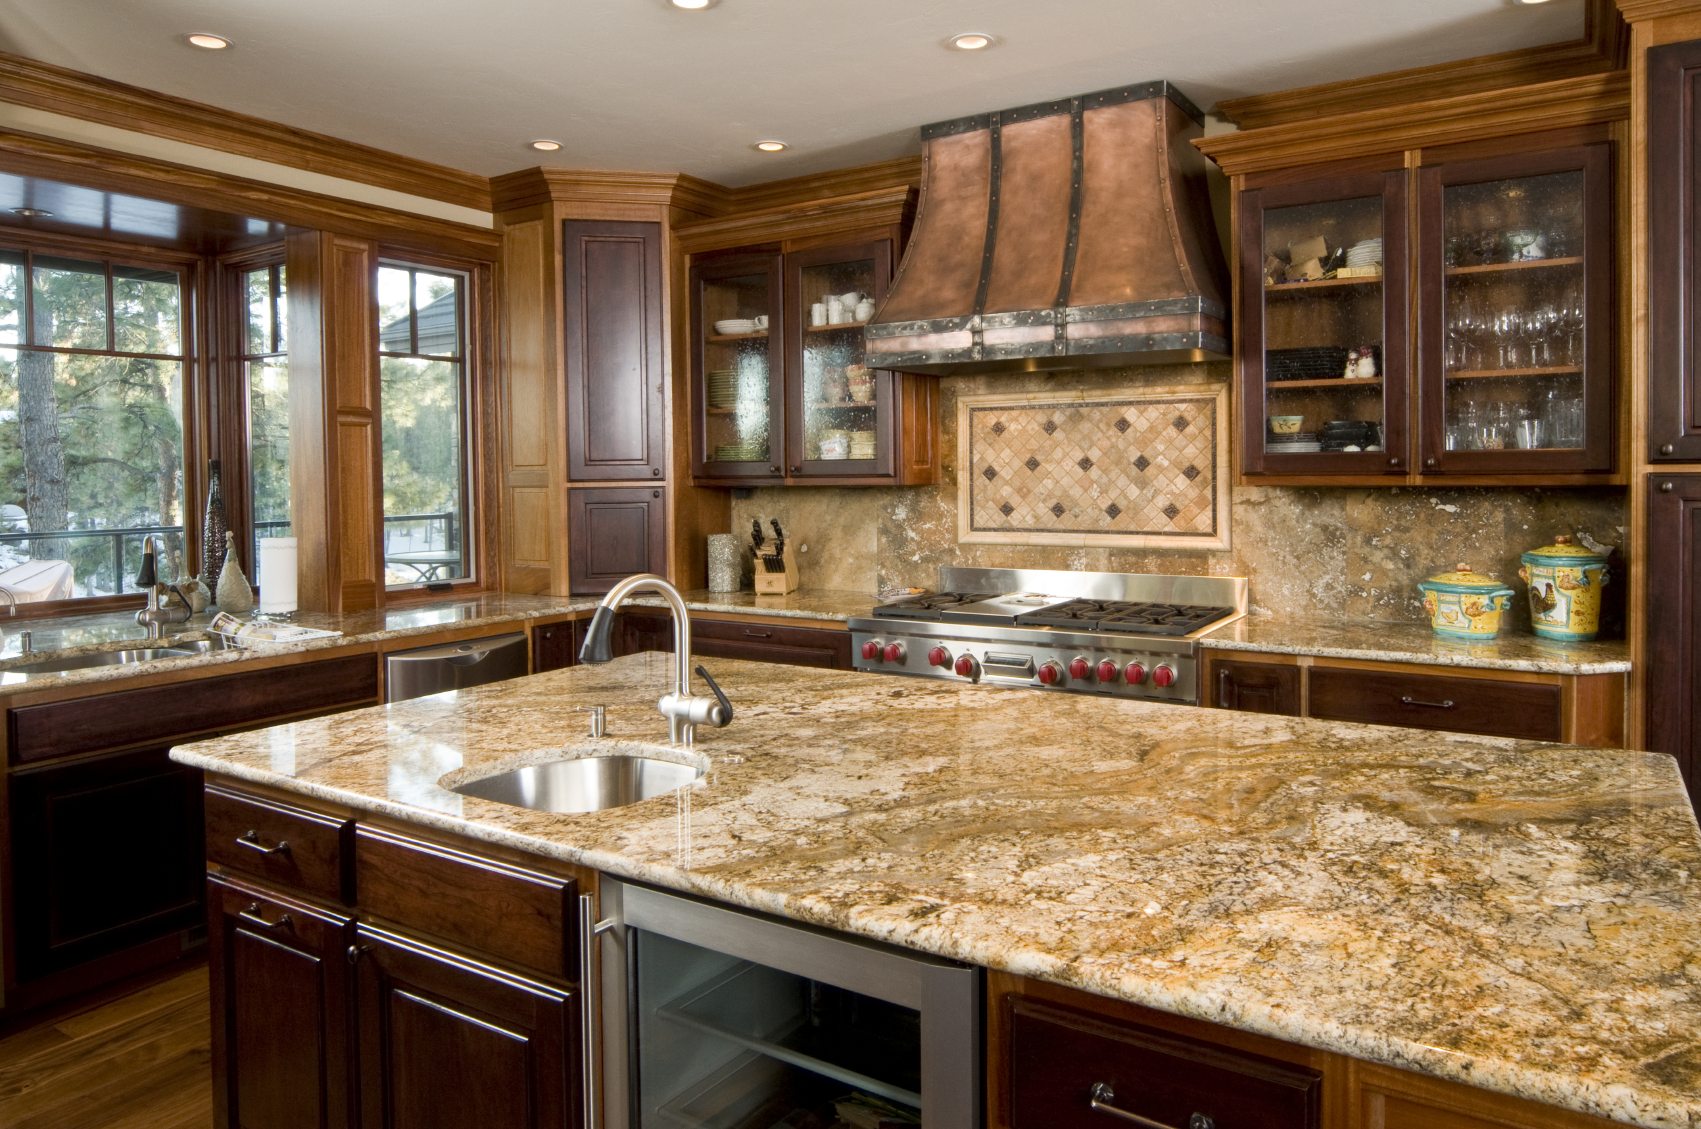 contemporary wood kitchens kitchen counters and backsplash Copper tones unify this kitchen featuring dark wood cupboard doors over lighter toned cabinetry with